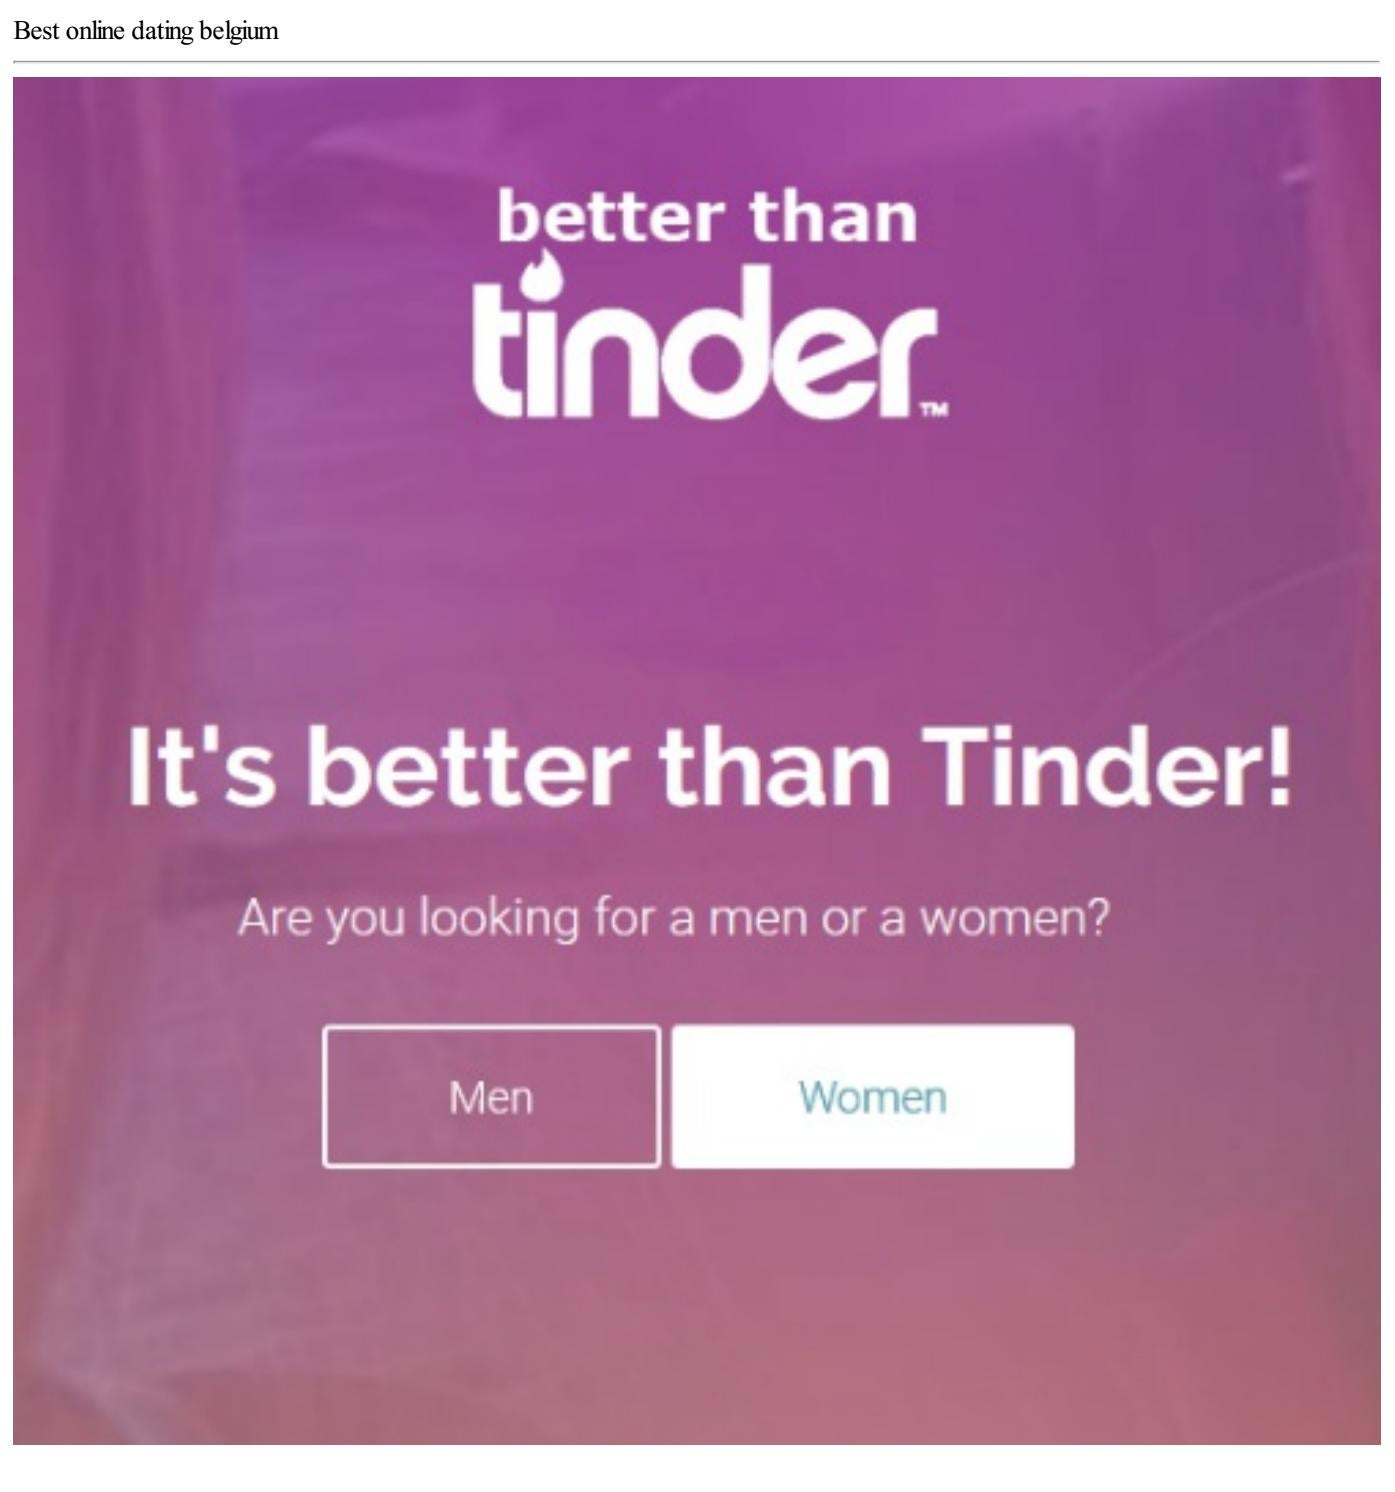 online dating Belgia